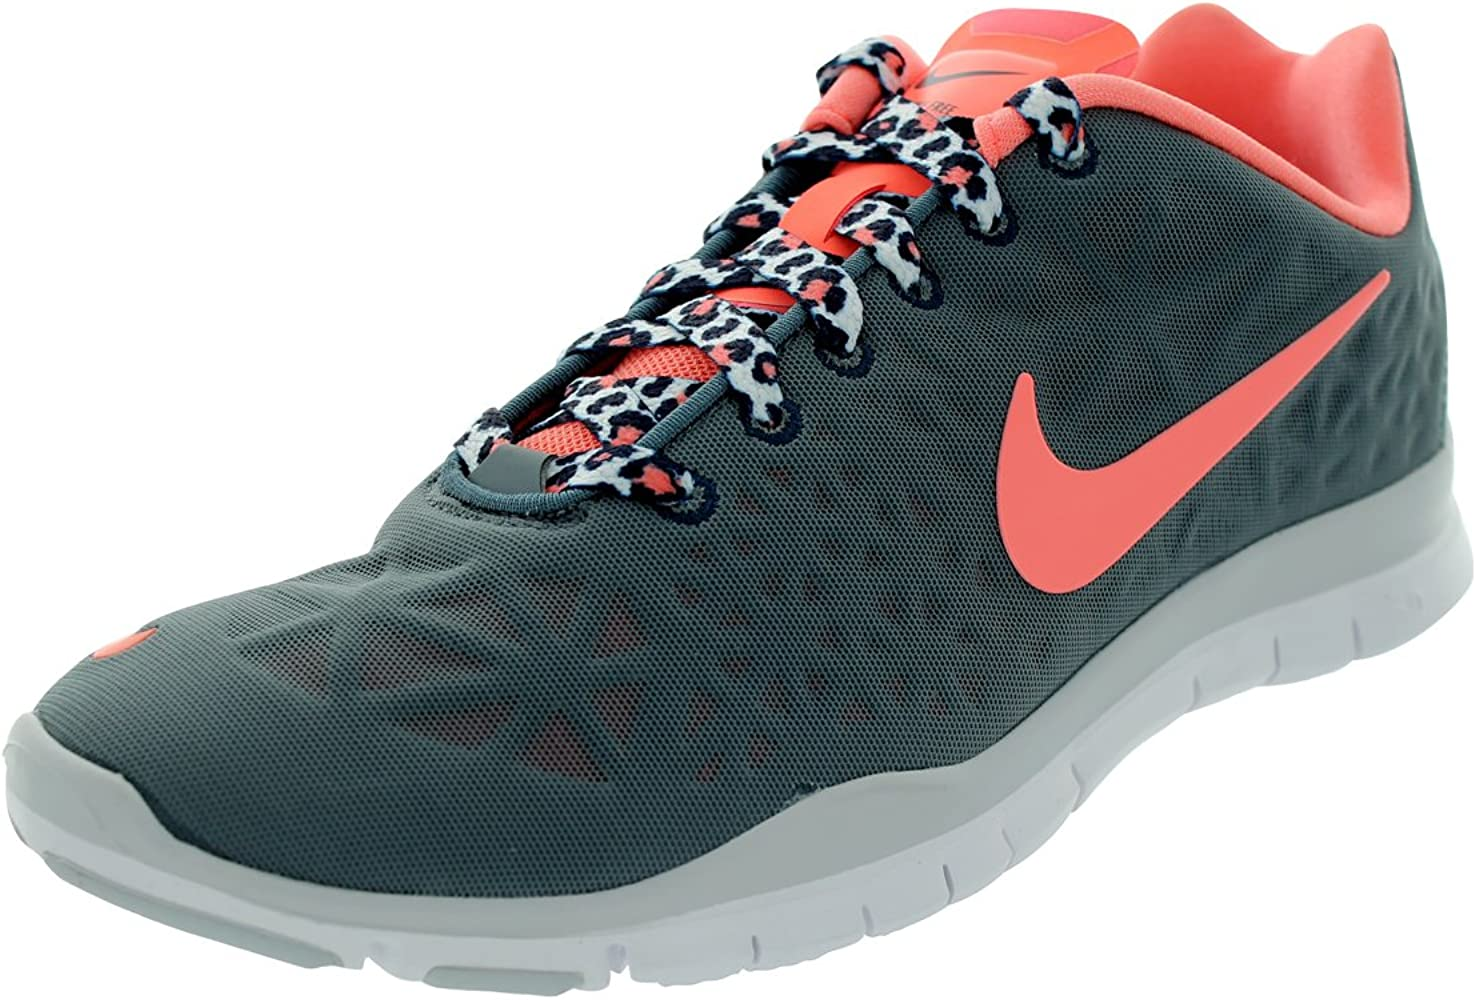 Cintura Raramente erosión  Amazon.com | Nike Free TR Fit 3 Women Running Shoes 555158-400 Armory Slate  10 M US | Running